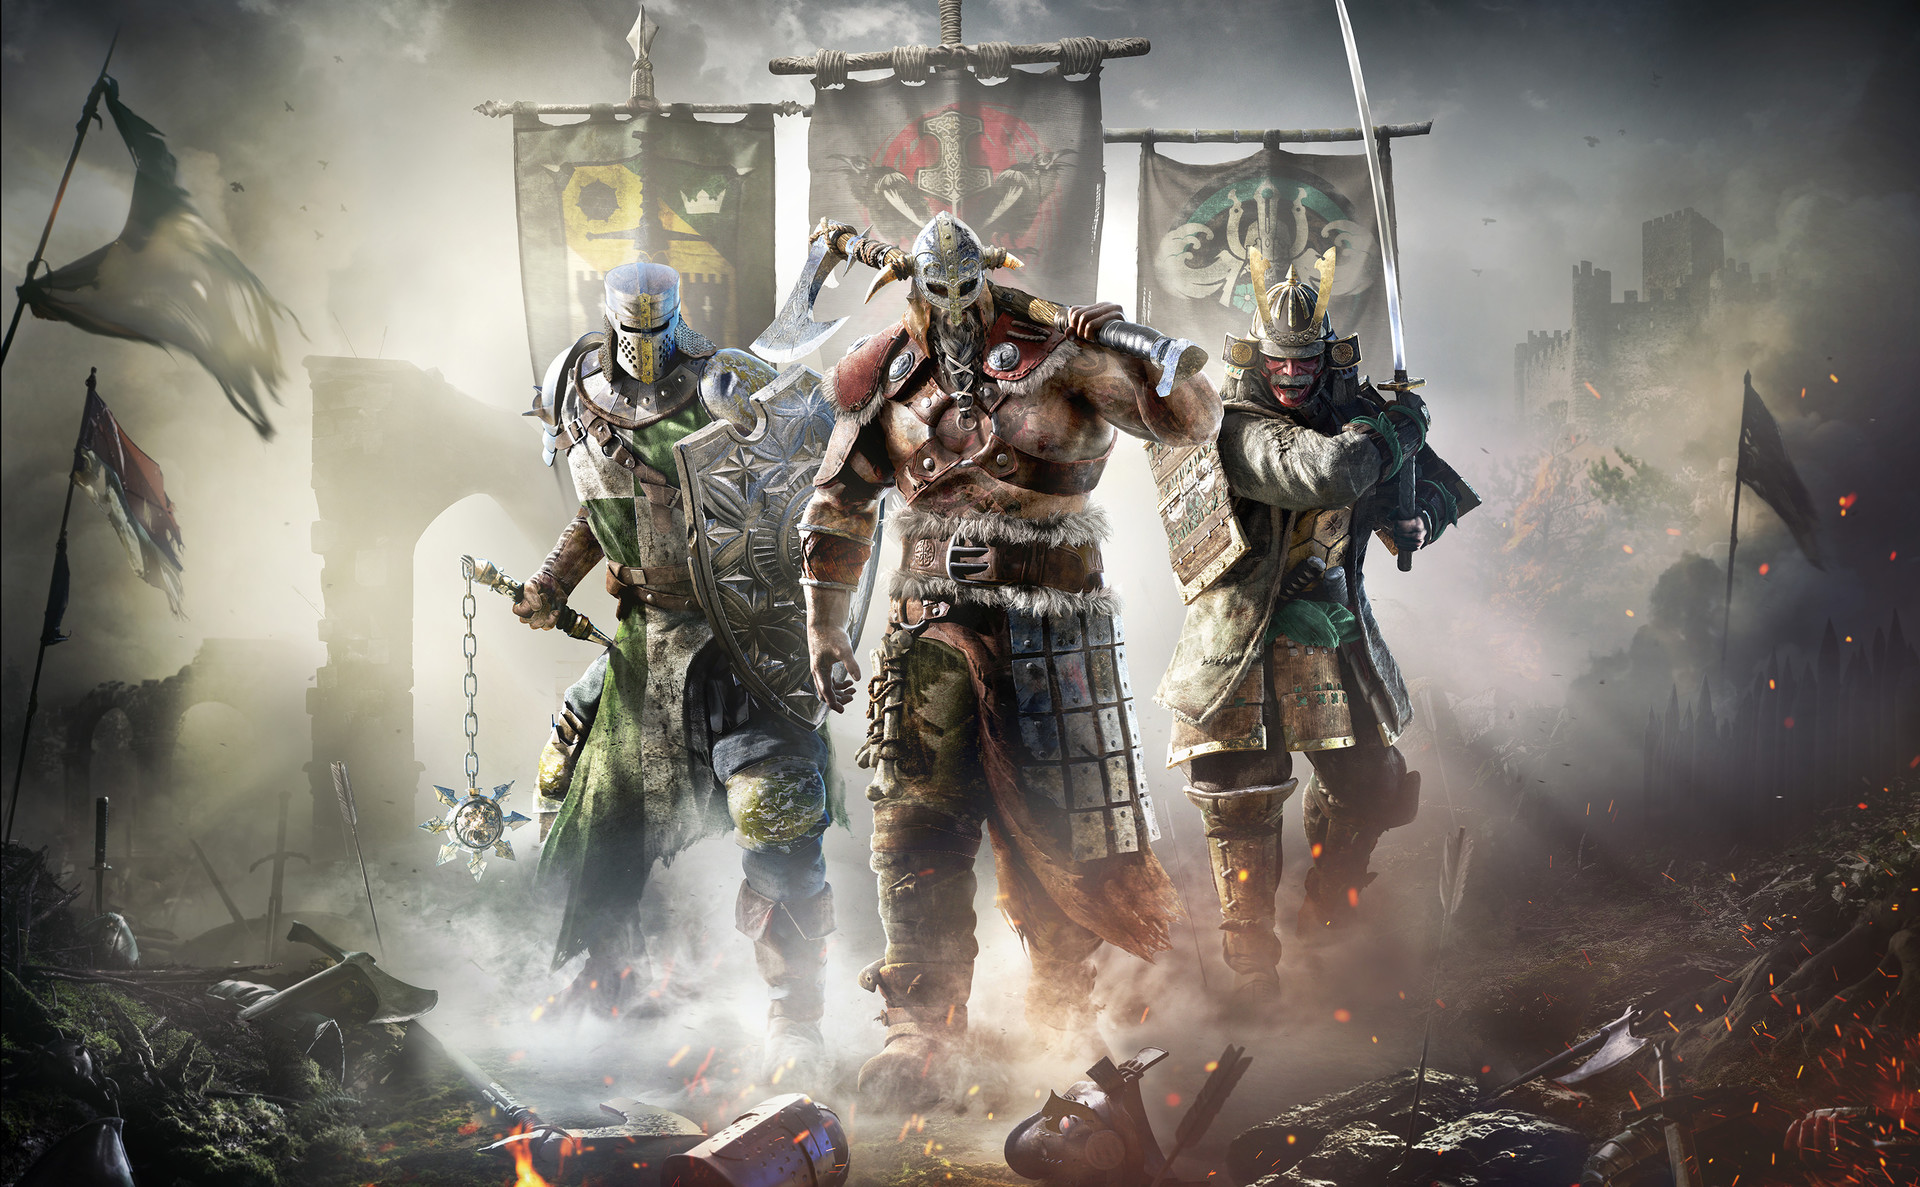 Wil wells for honor keyart wil wells ubisoft